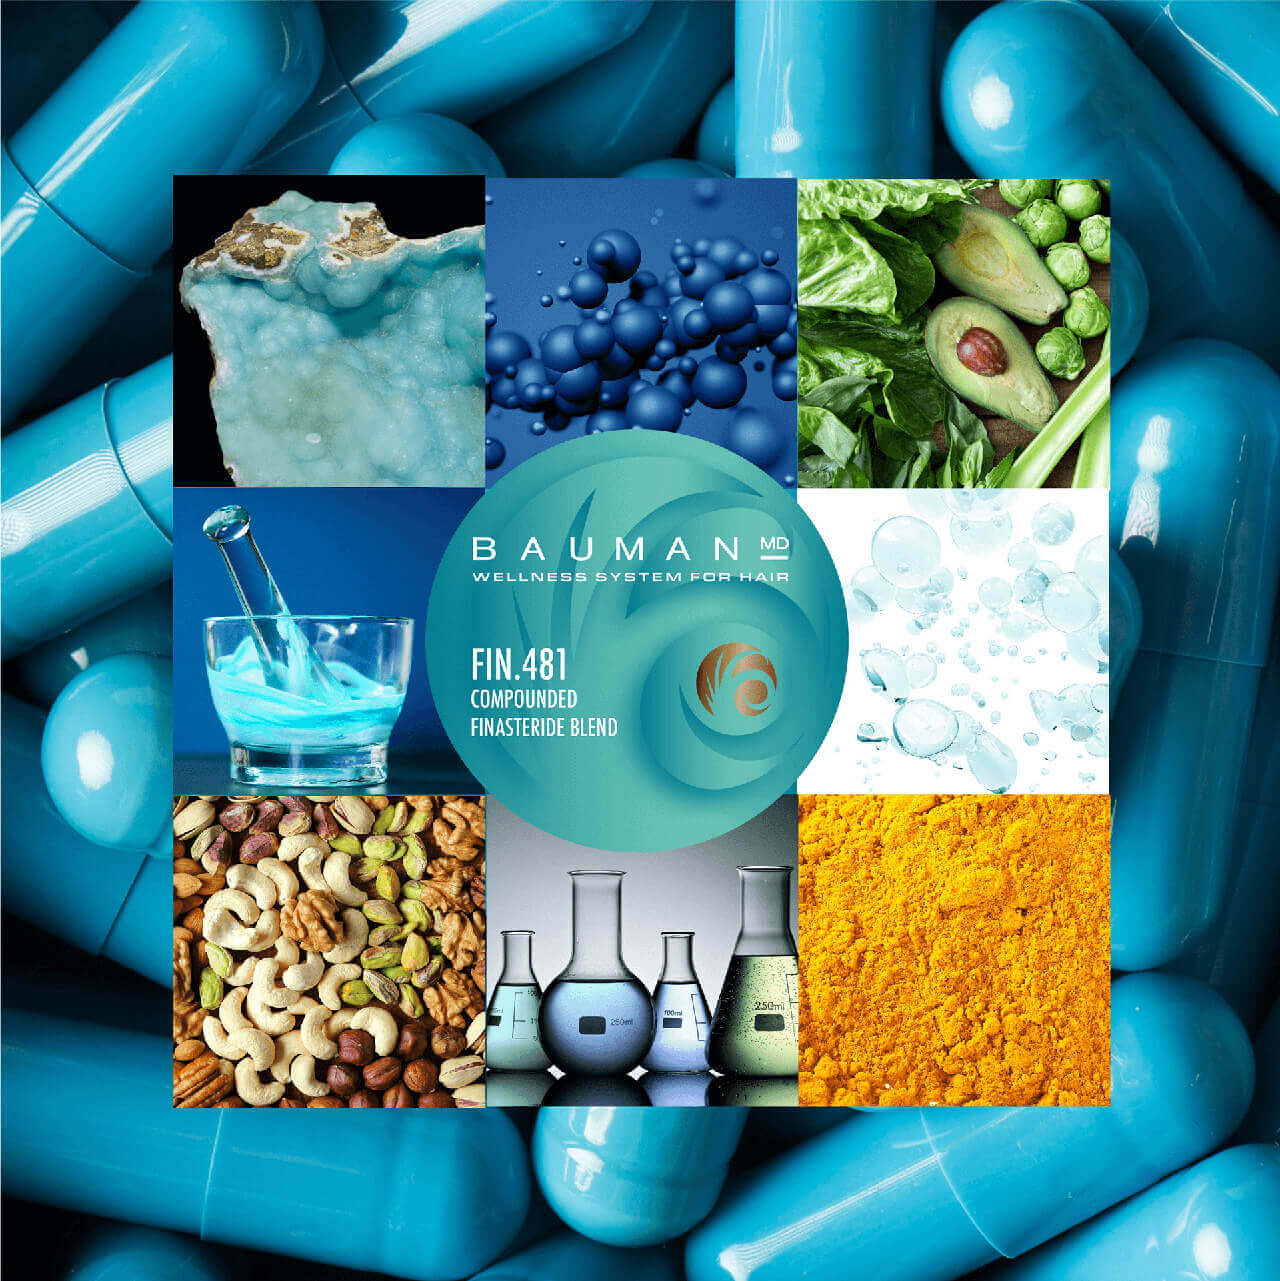 fin 481 ingredients Compounded Finasteride: Fin.481